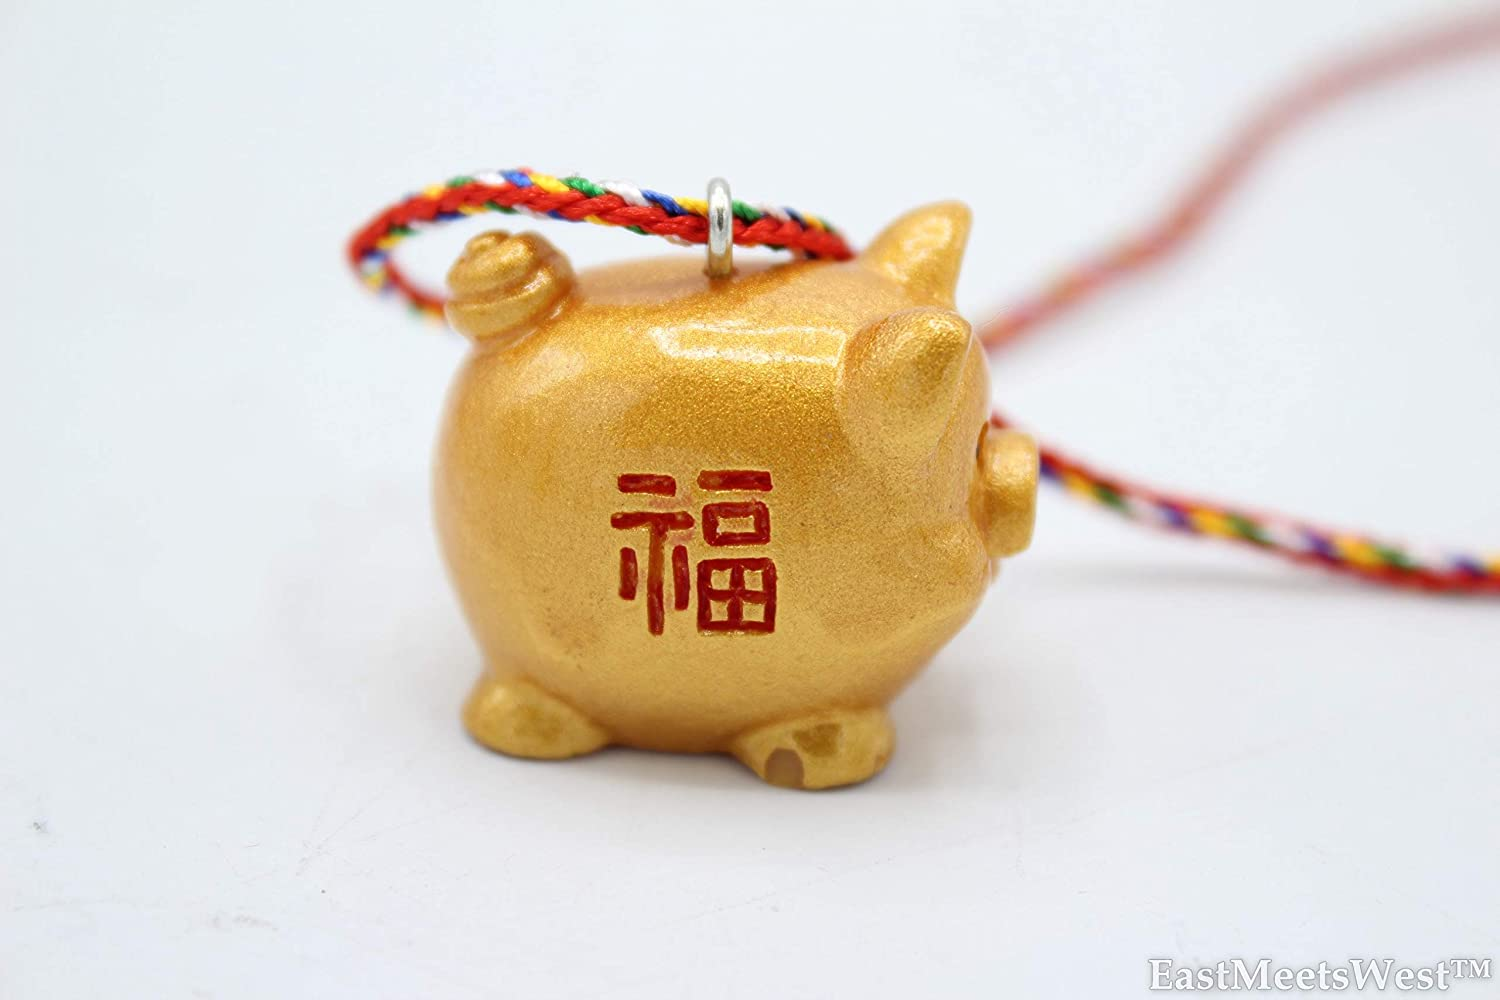 Feng shui Chinese Knot Resin Wealth Lucky Pig Pendant Tassels Car Hanging Decor